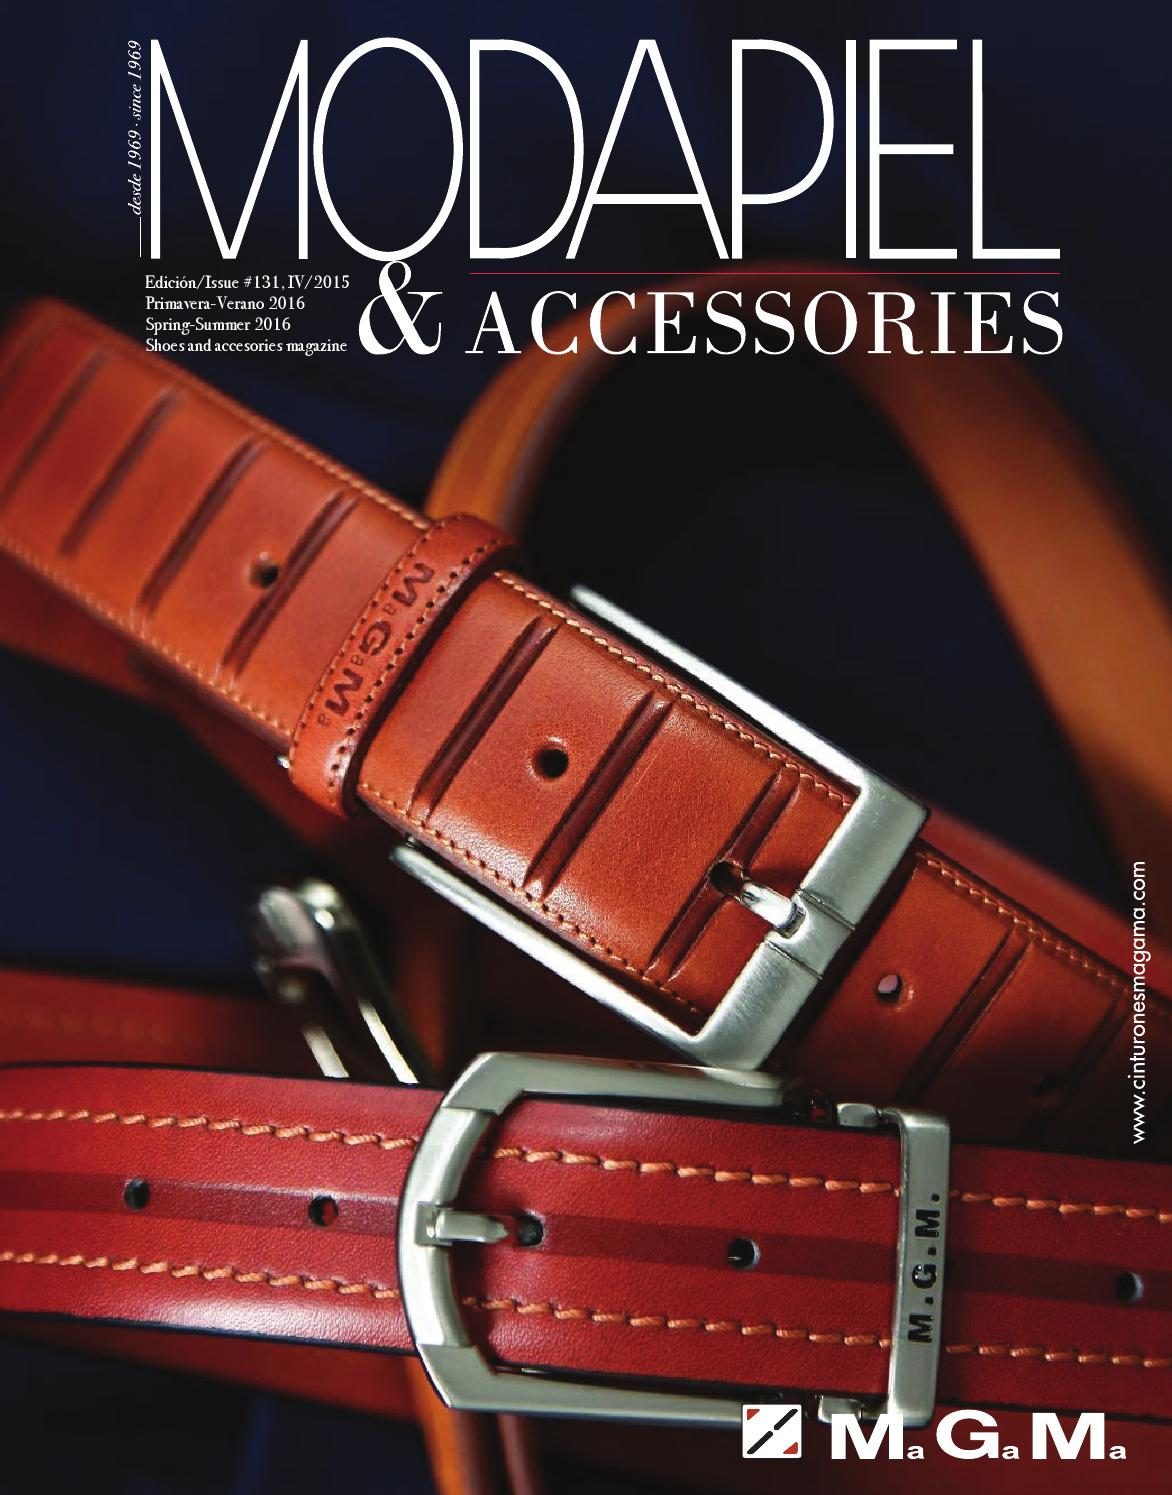 b6477c81ddc2a Modapiel 131 Shoes and accessories magazine by Prensa Técnica S.L. - issuu